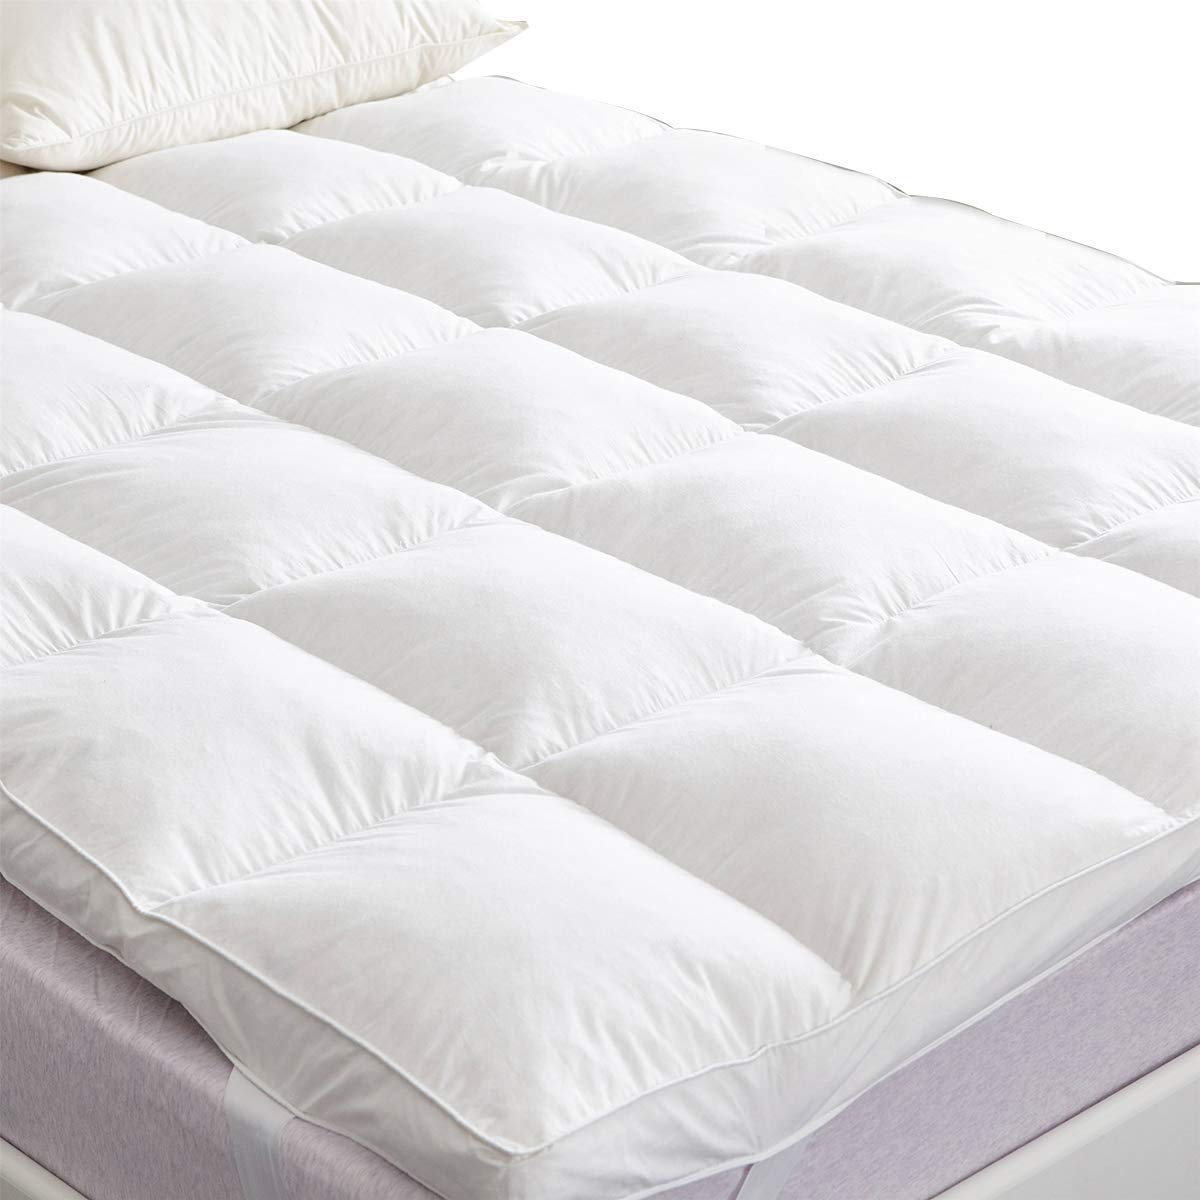 SUFUEE Goose Feather & Down Mattress Topper, 7cm Thick Bed Topper with 100% Cotton Shel